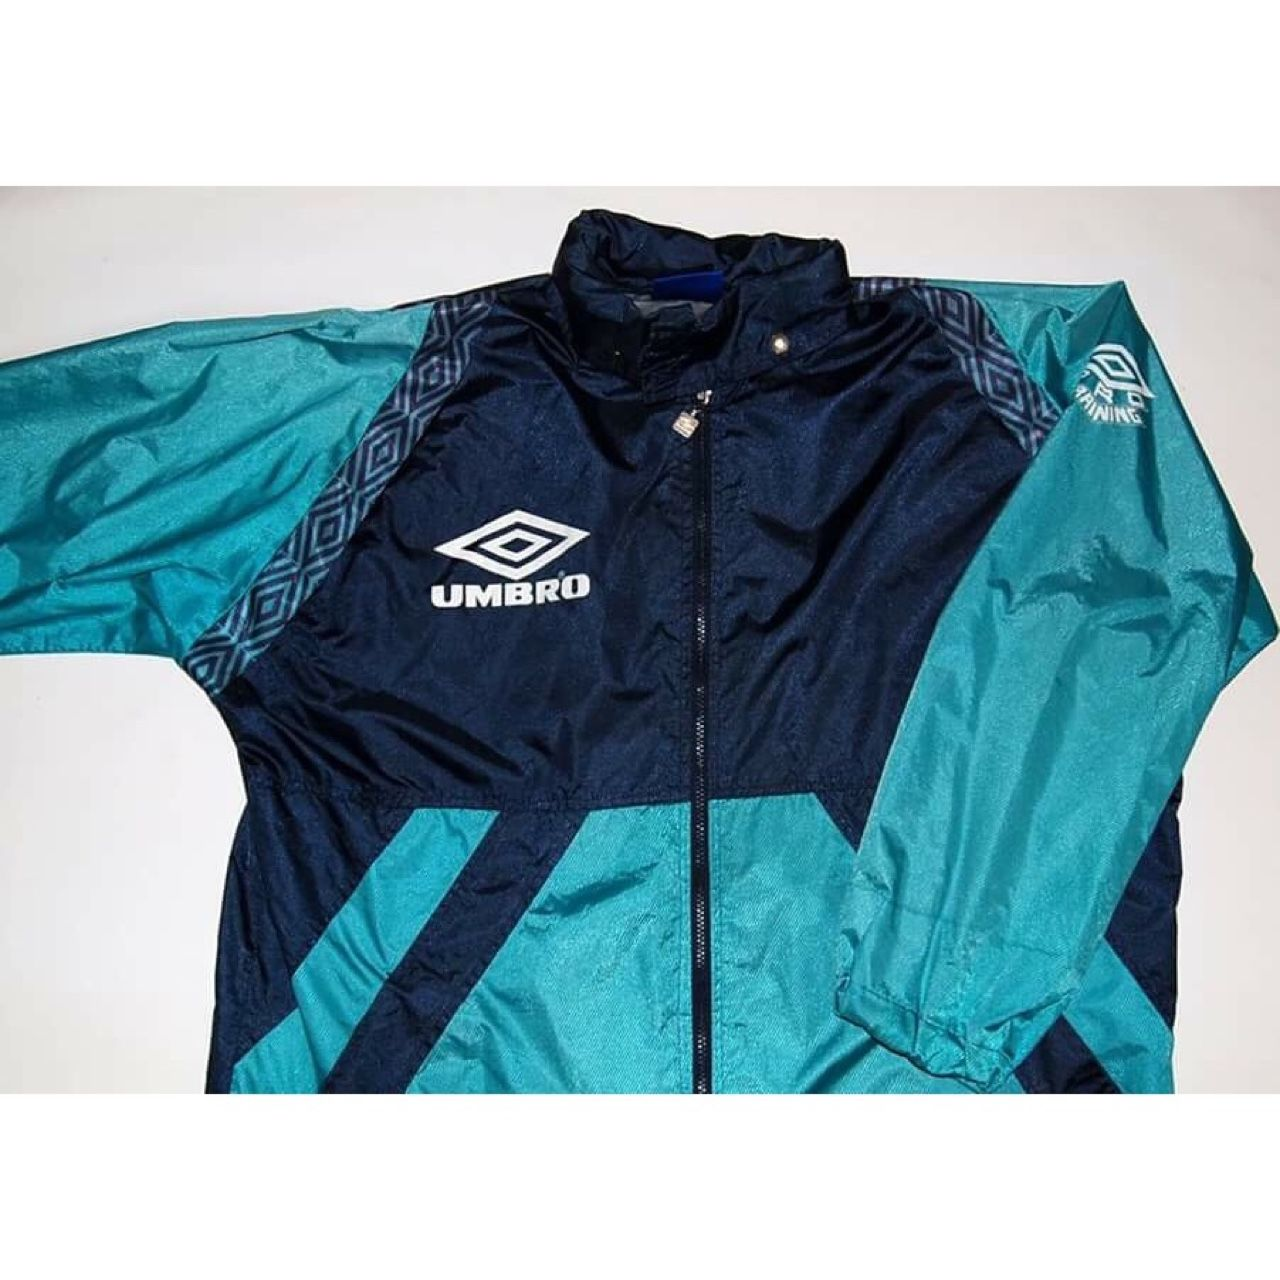 e51c7888e6987 90s Umbro lightweight jacket   windbreaker. Lots of nice detail. Has wear    ageing. Size Large but would fit XL aswell. Also has a fold away hood.